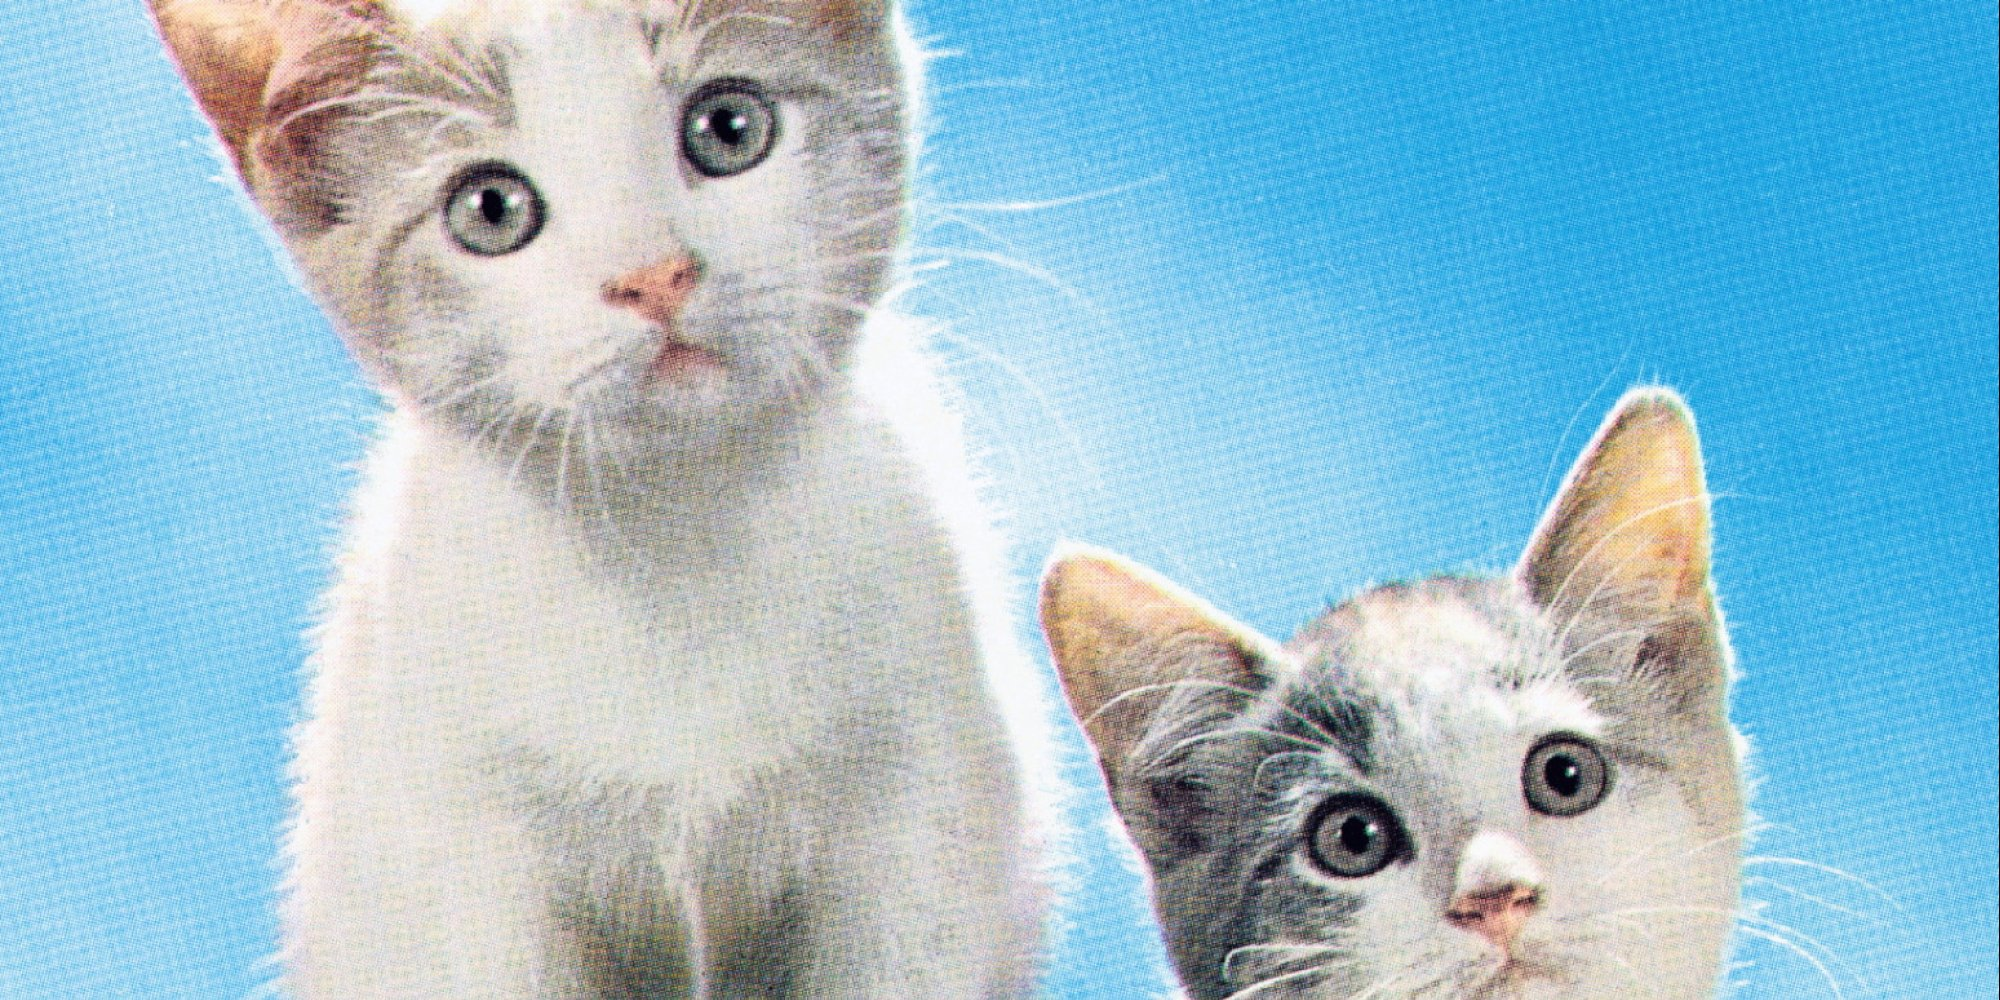 The Top 100 Most Adorable and Cute Cat Names | HuffPost